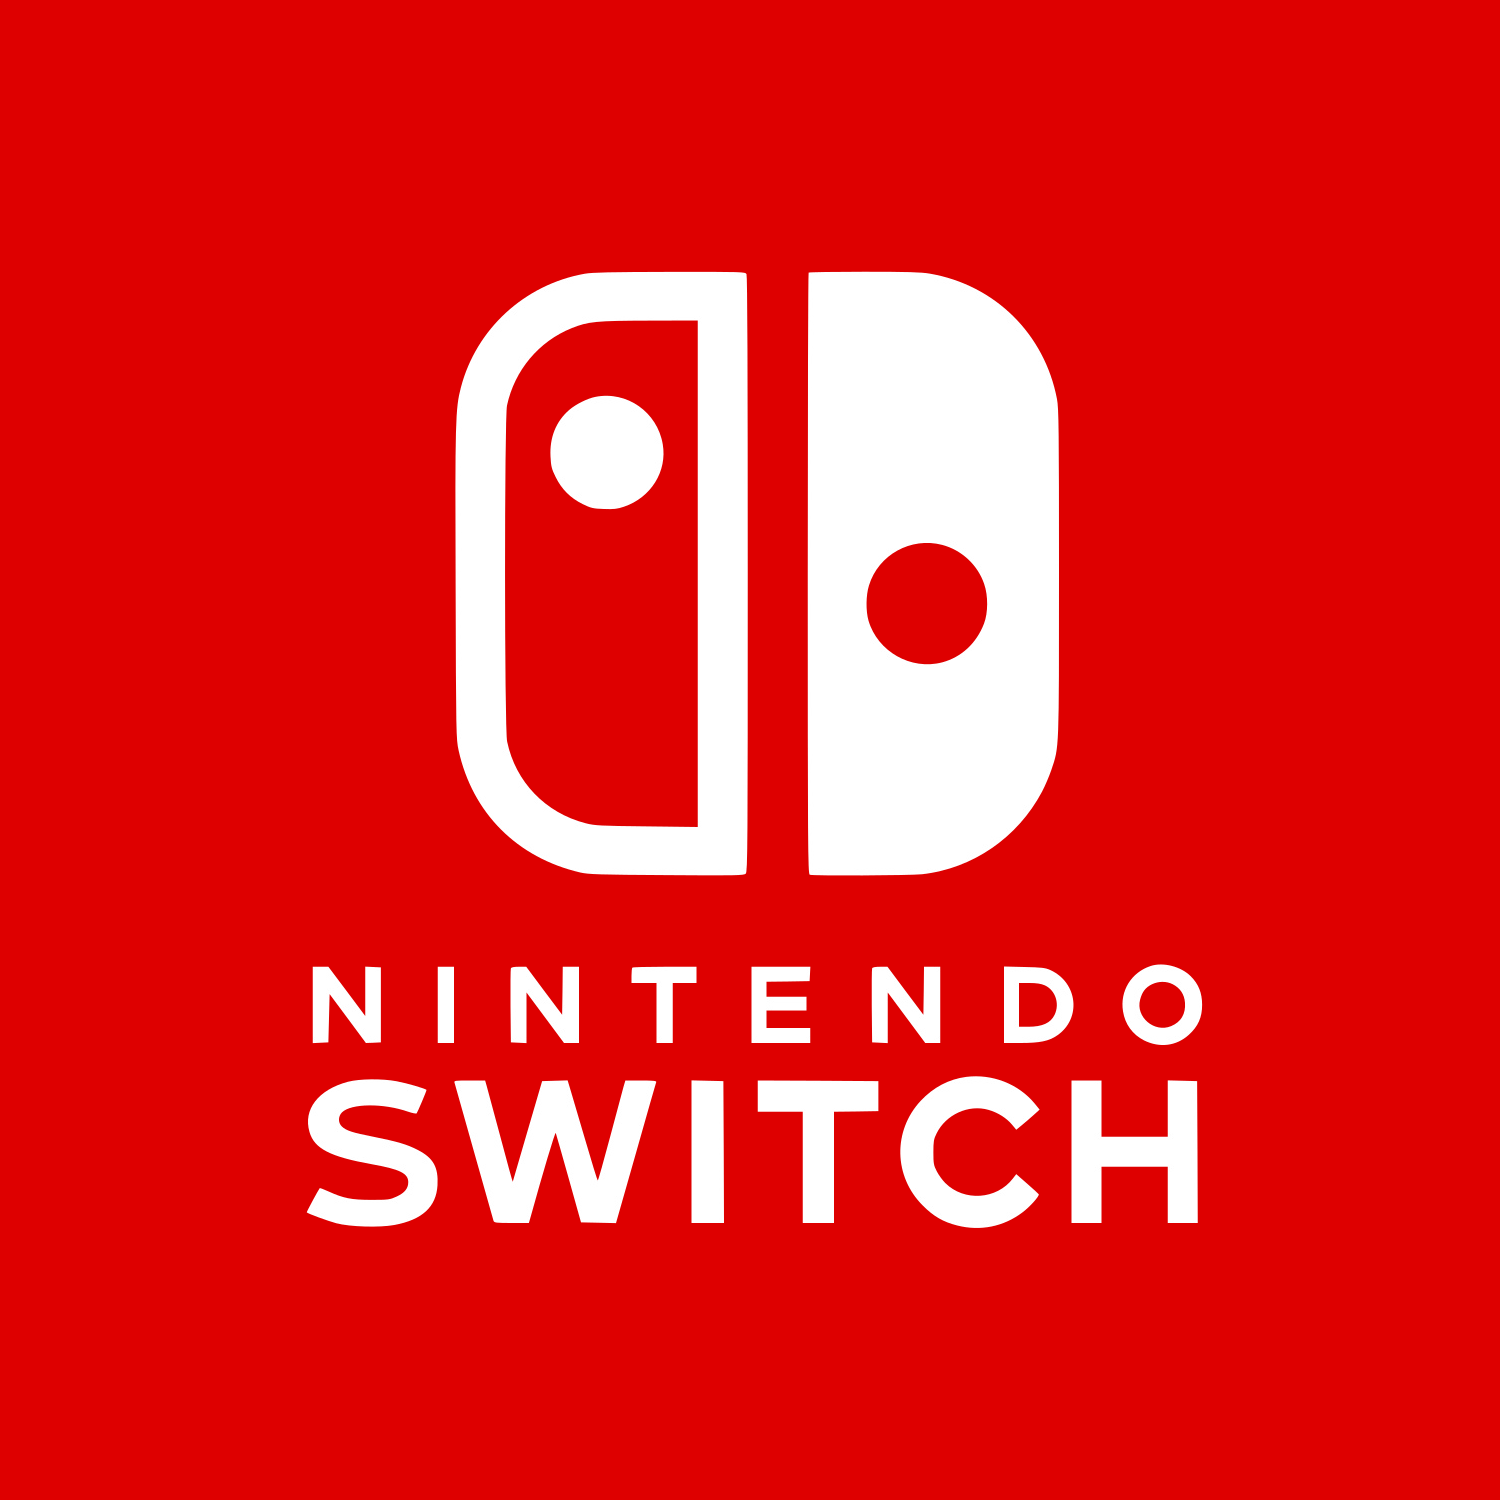 Free Nintendo Switch phone wallpaper by ash_ketchump